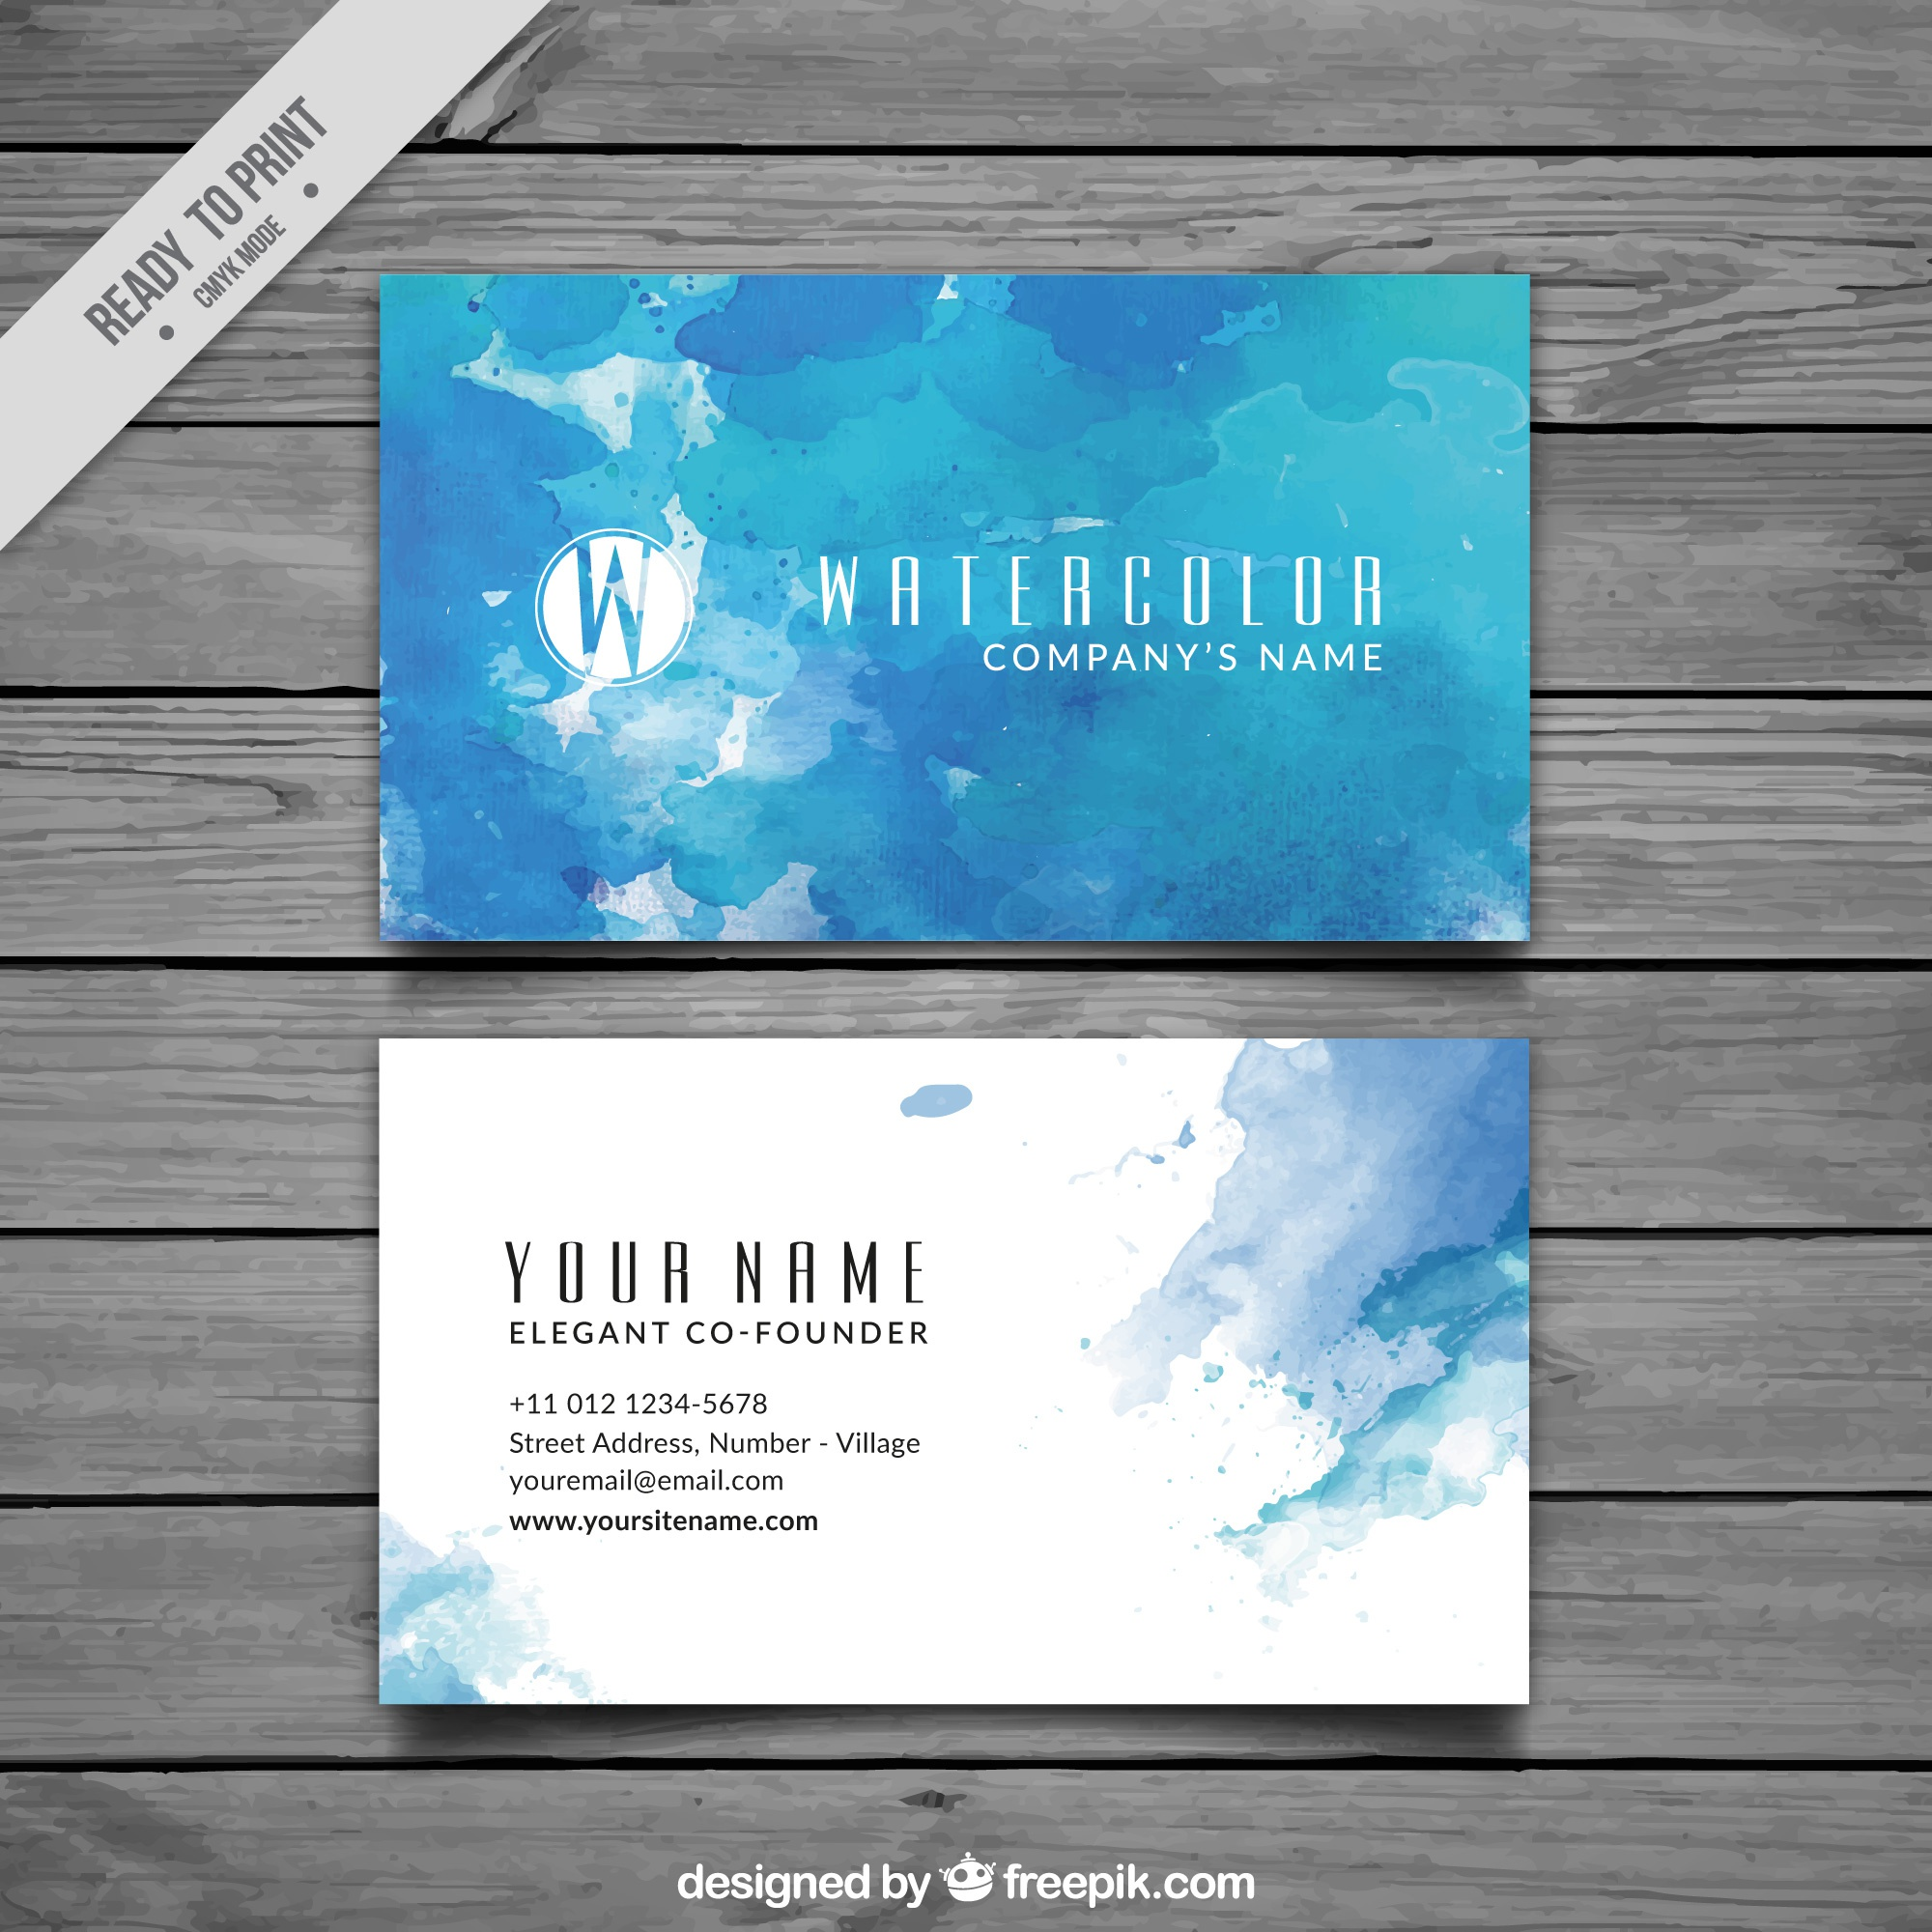 Blue business card in watercolor style